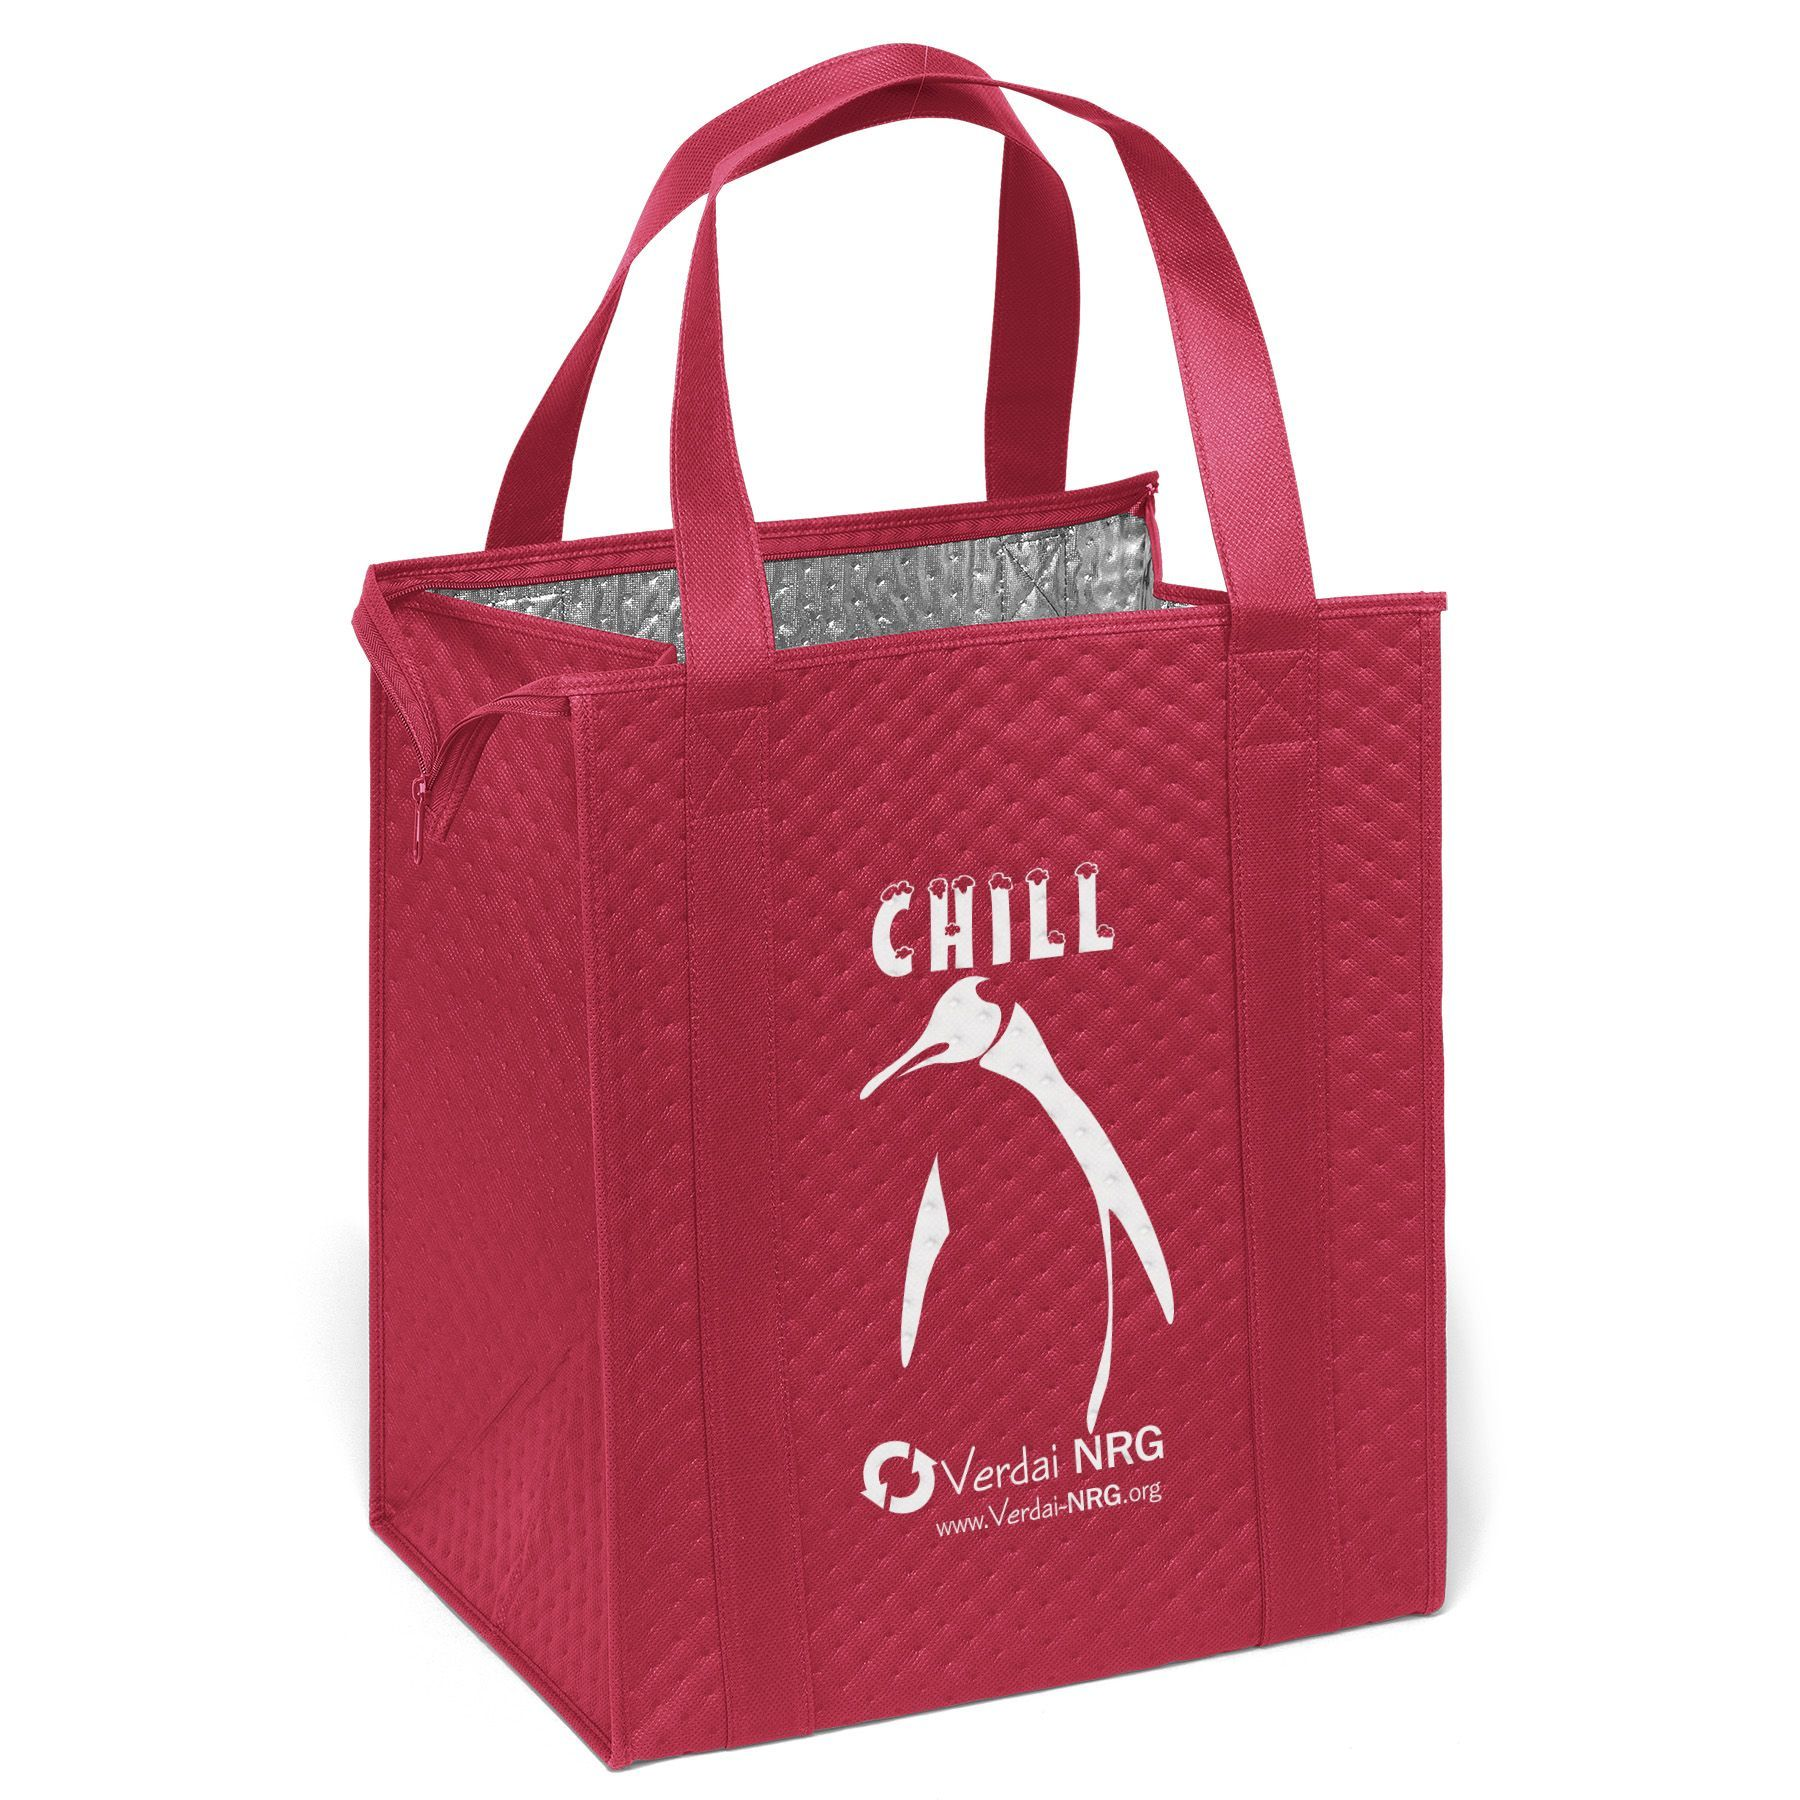 Therm O Tote Bag In 2020 Insulated Tote Bag Grocery Tote Bag Tote